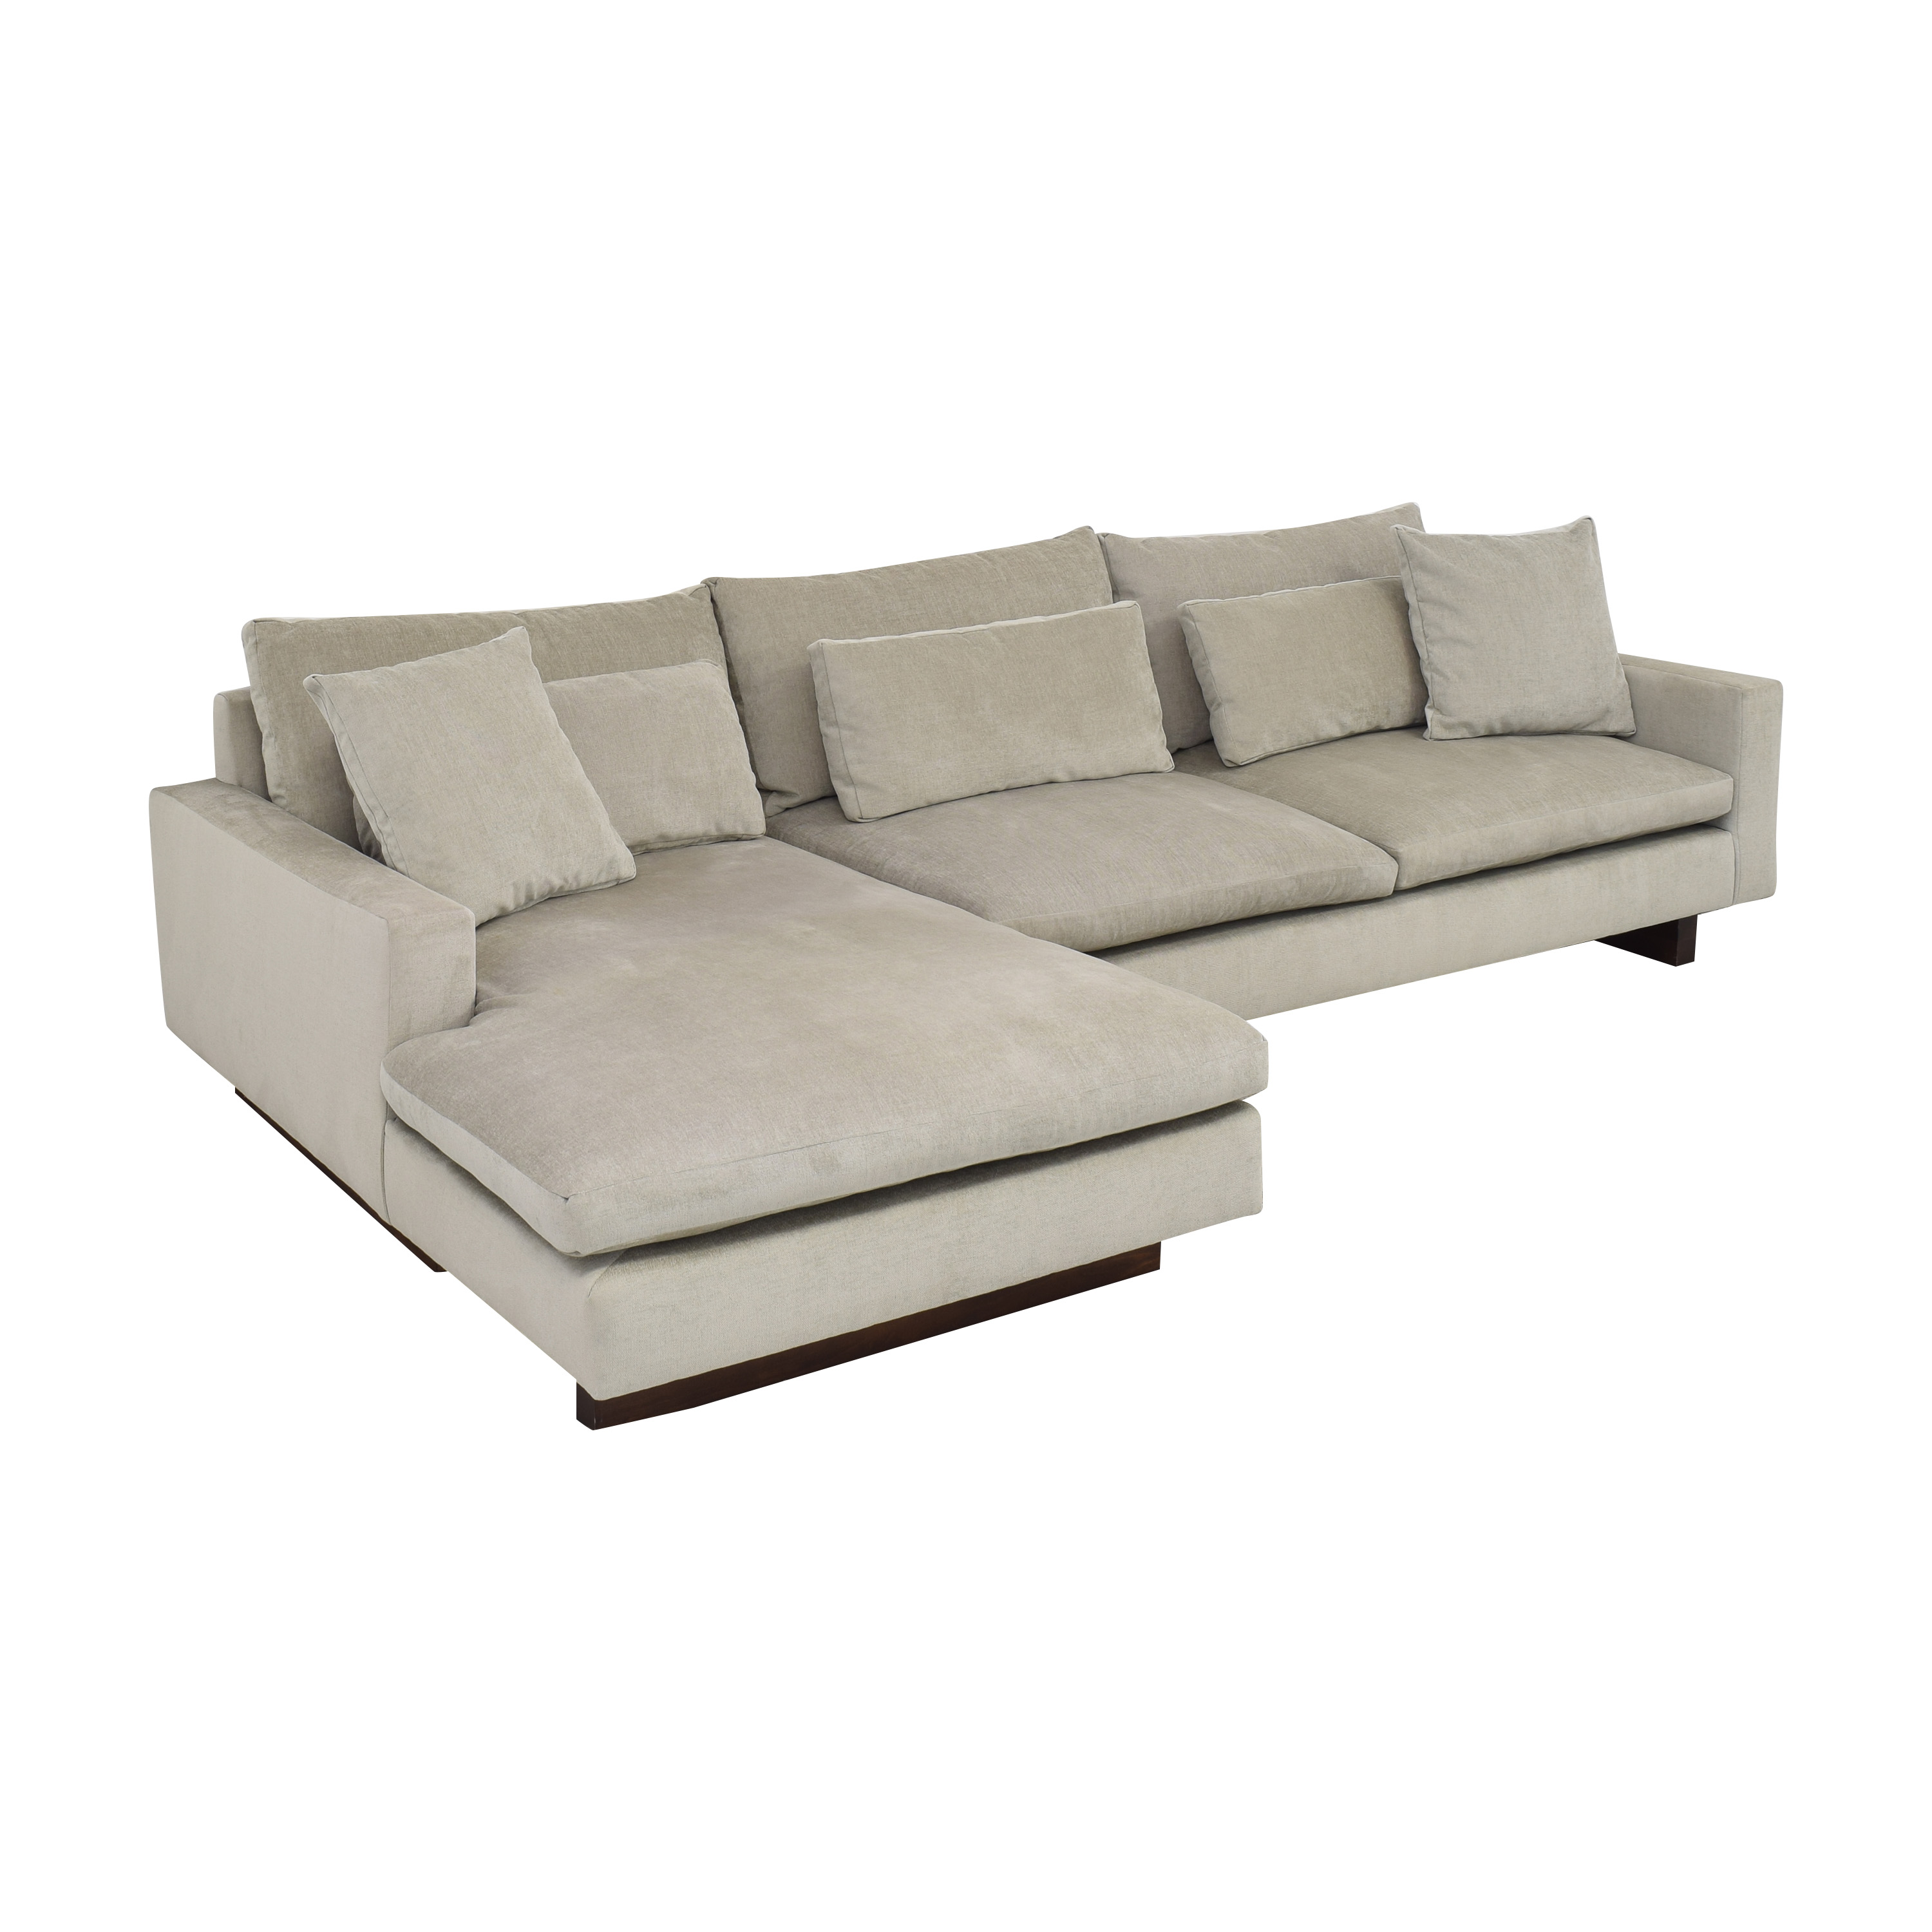 West Elm West Elm Harmony Chaise Sectional Sofa nj